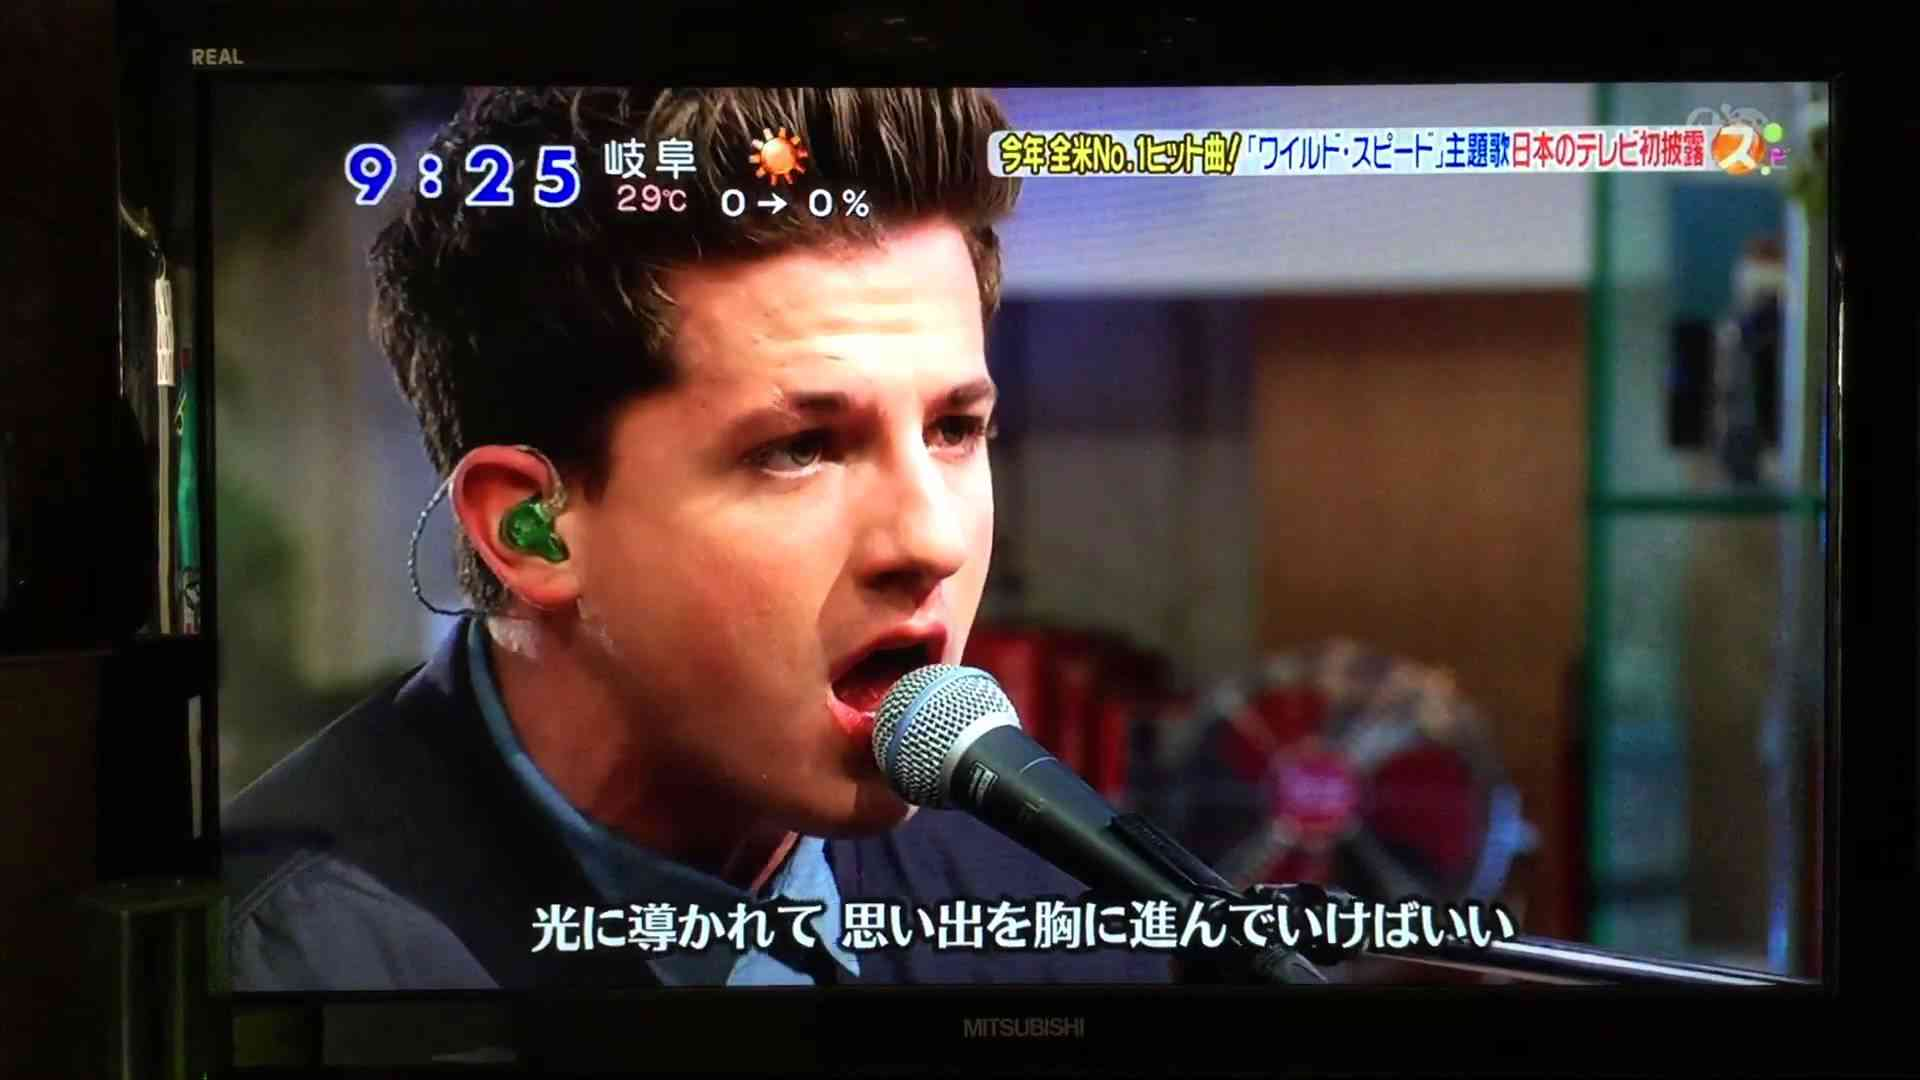 Charlie Puth (チャーリー・プース) See You Again Charlie solover スッキリ (HD) - YouTube